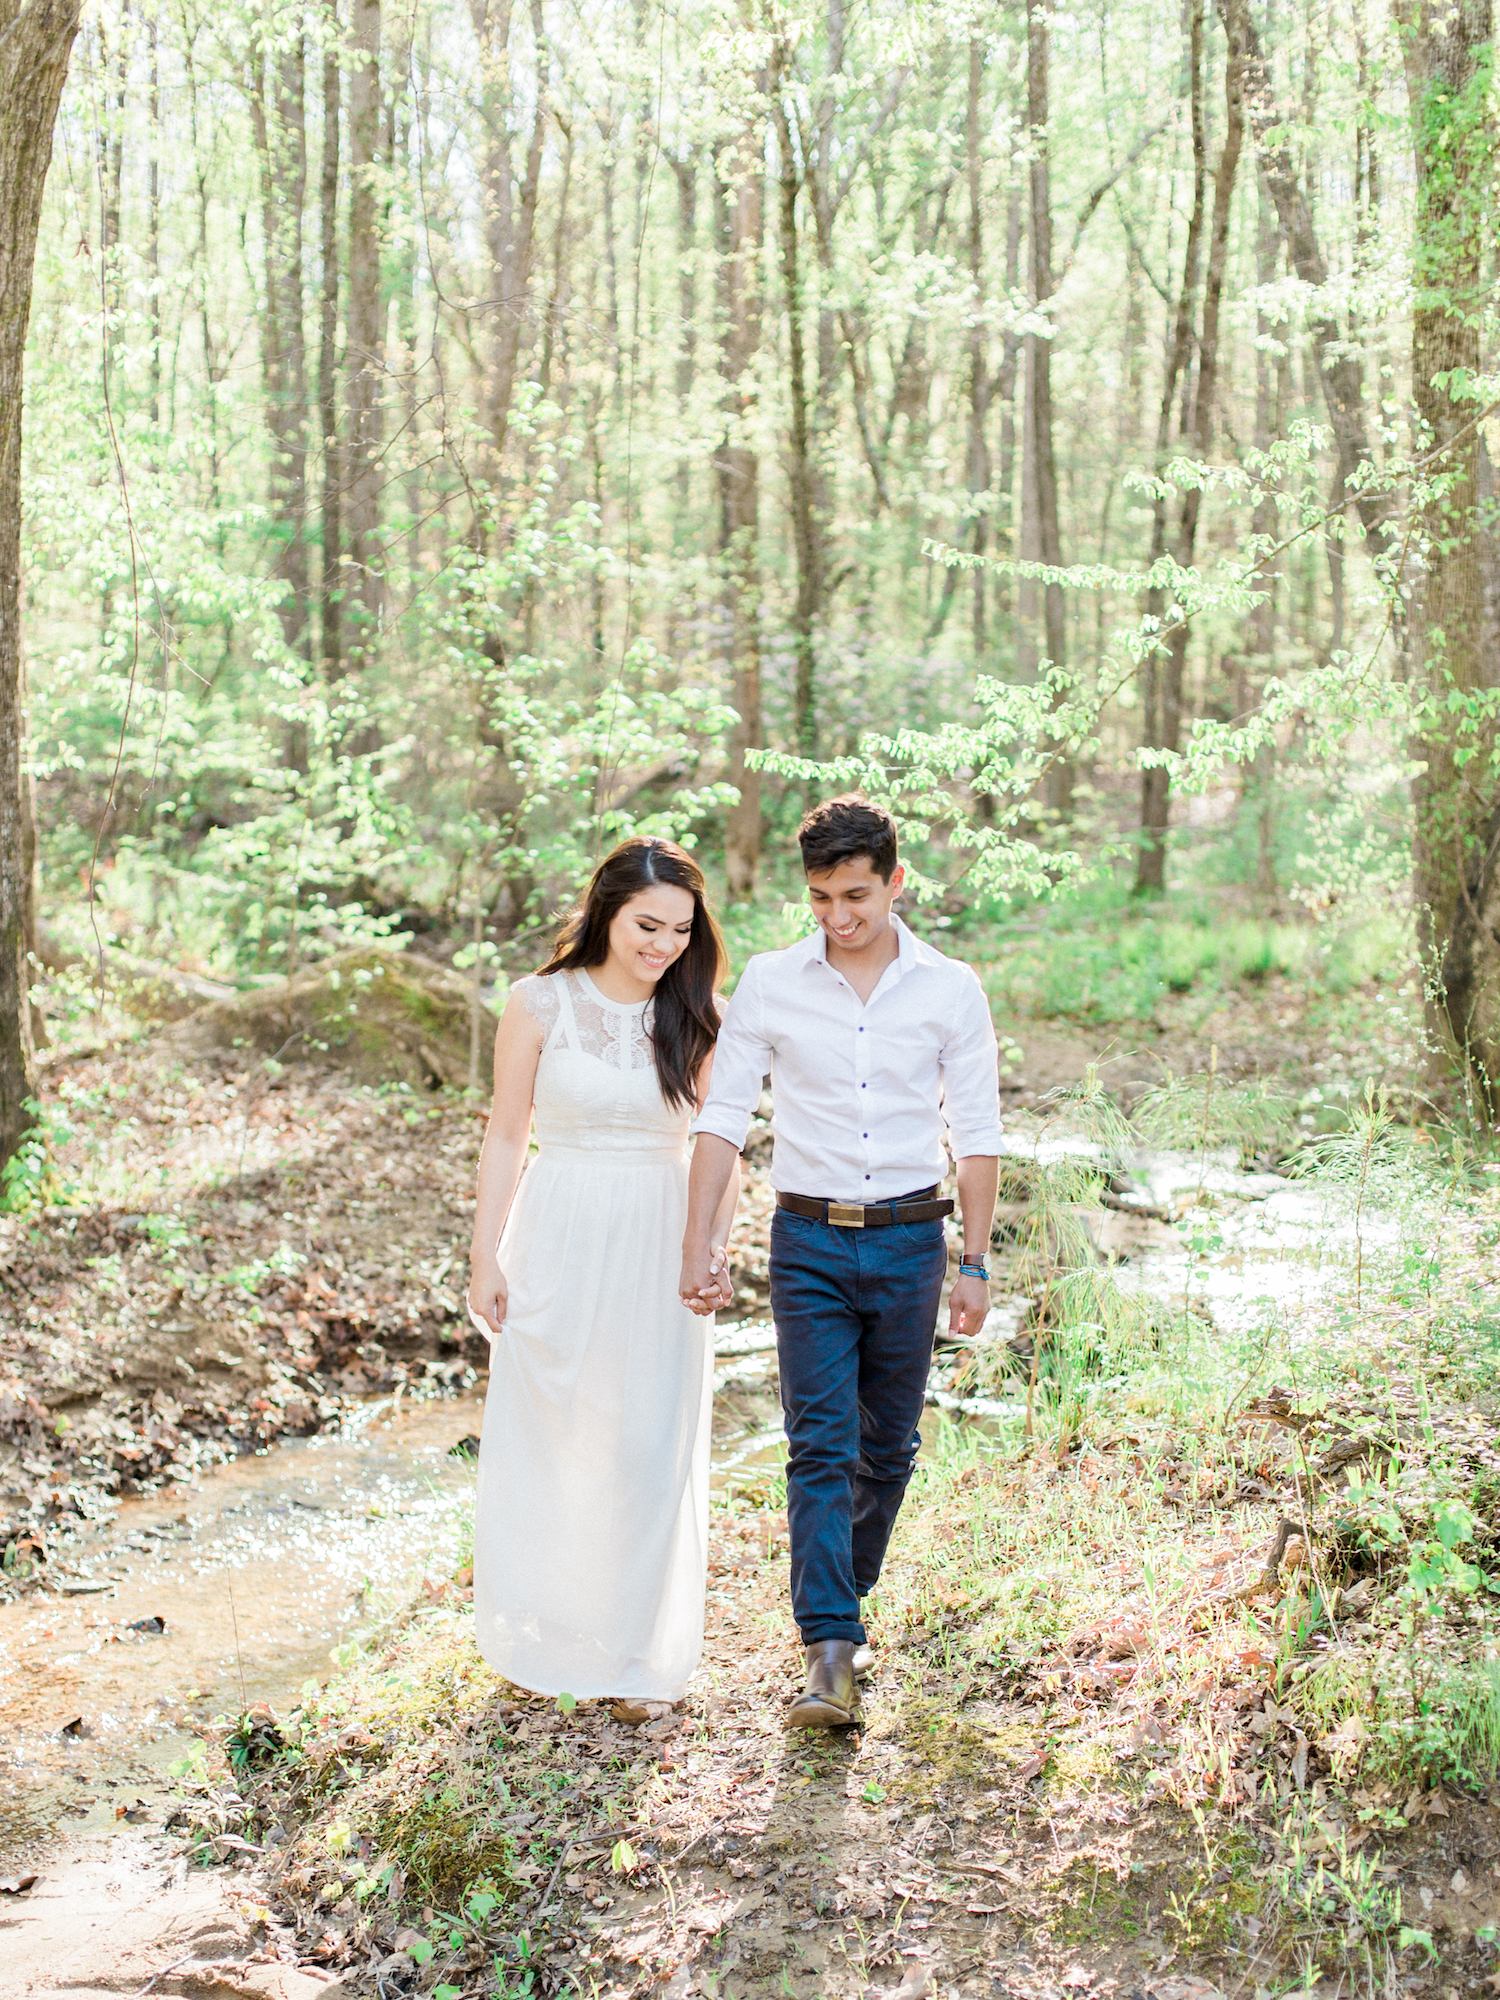 Spring engagement session at Sweetwater Creek State Park in north Georgia. Featuring white, neutral outfits and natural and organic elements. Photo by Kesia Marie Photography - fine art wedding and portrait photographer in Atlanta, Georgia.